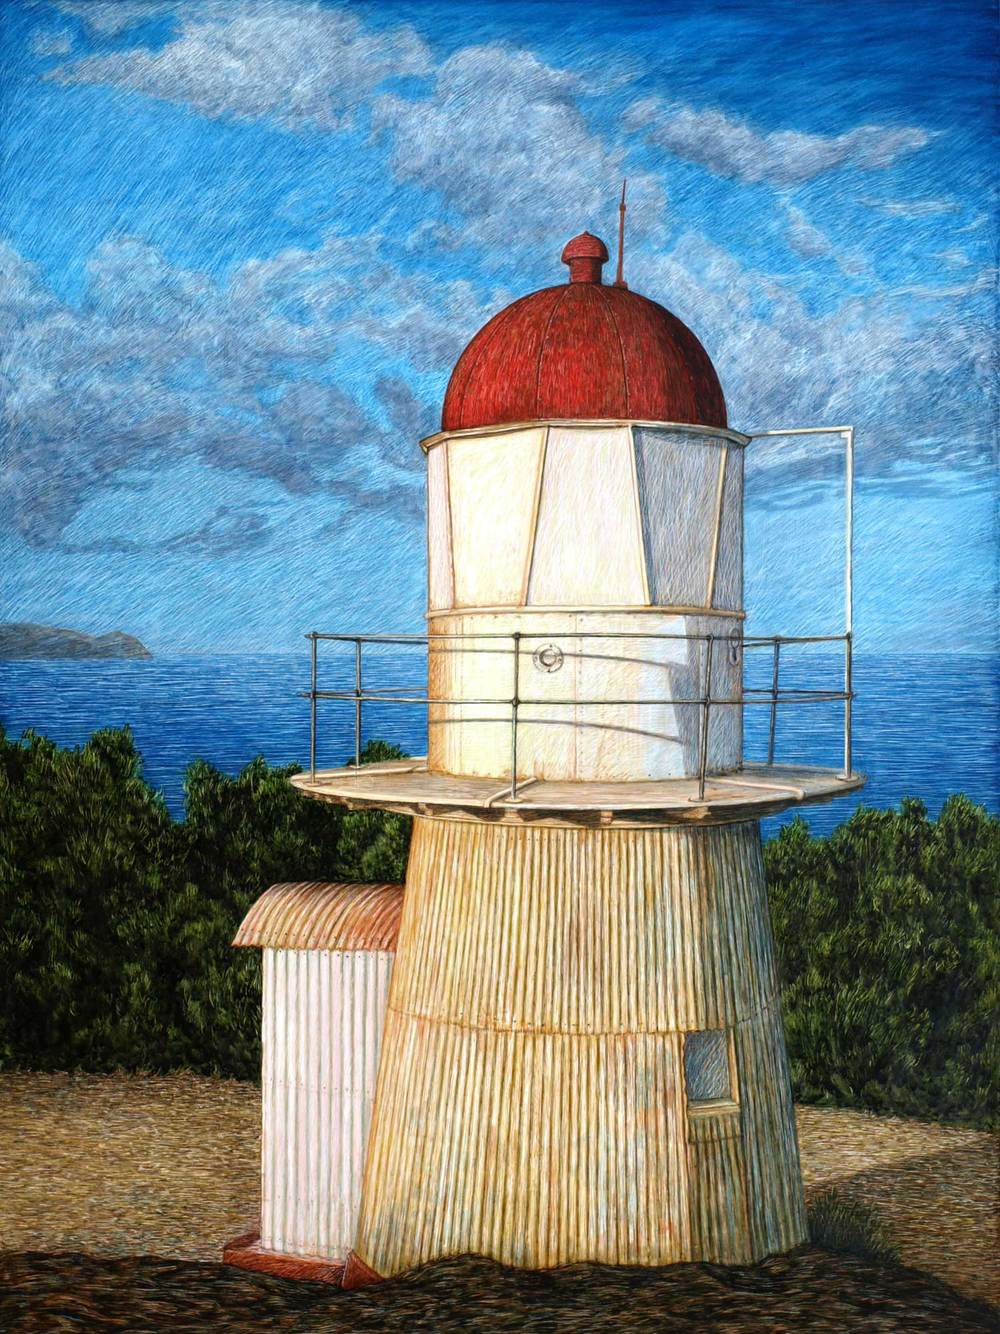 COOKTOWN LIGHTHOUSE  61 X 45.5 CM    EDITION OF 50  PIGMENT ON COTTON RAG PAPER  $1,100  Also available 75 x 56 cm $1,350